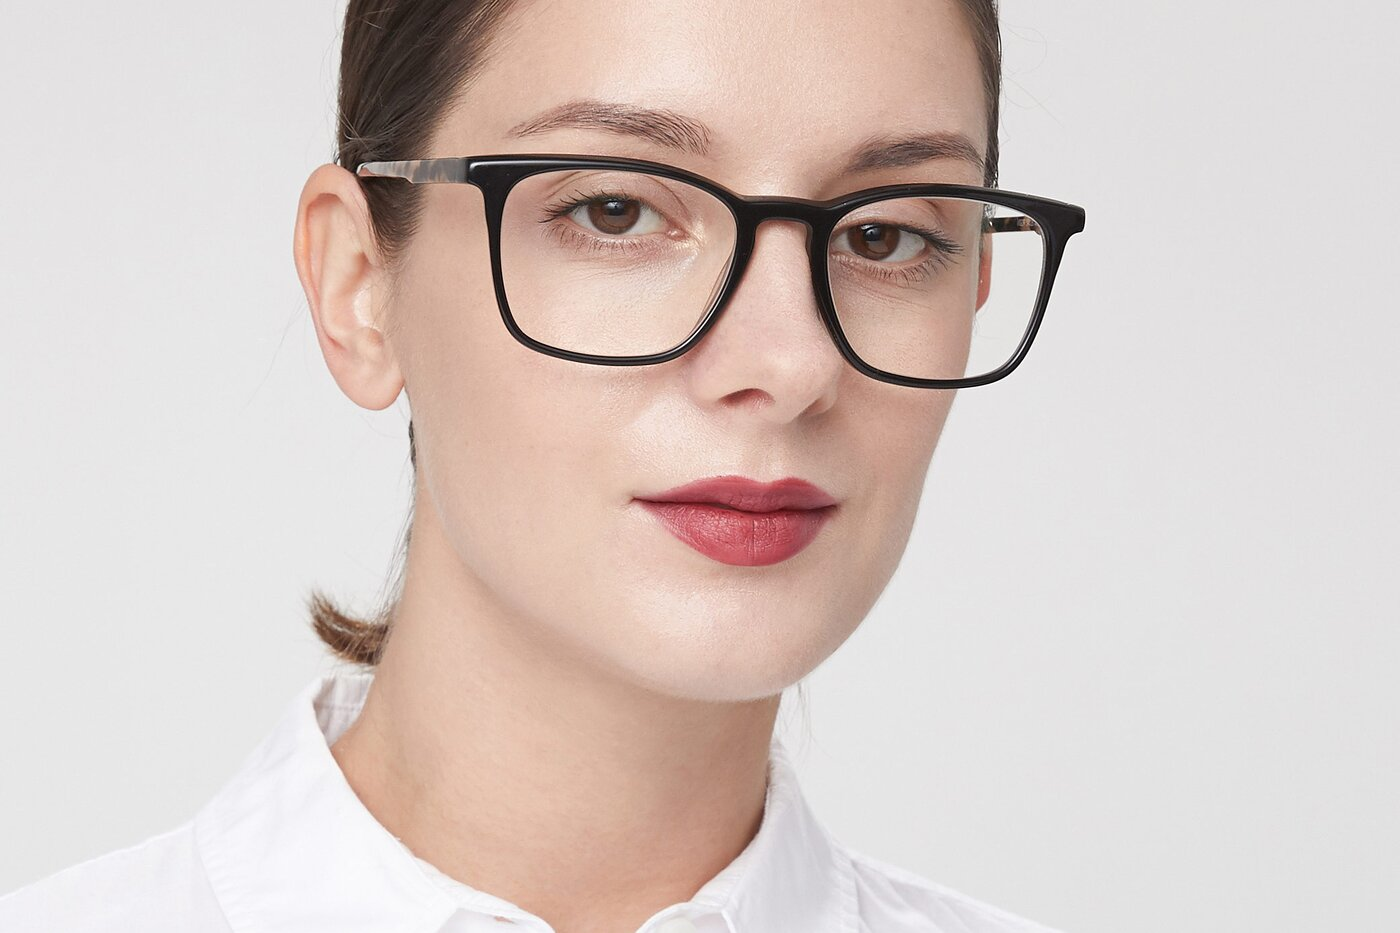 Black-Tortoise Keyhole Bridge Acetate Square Eyeglasses